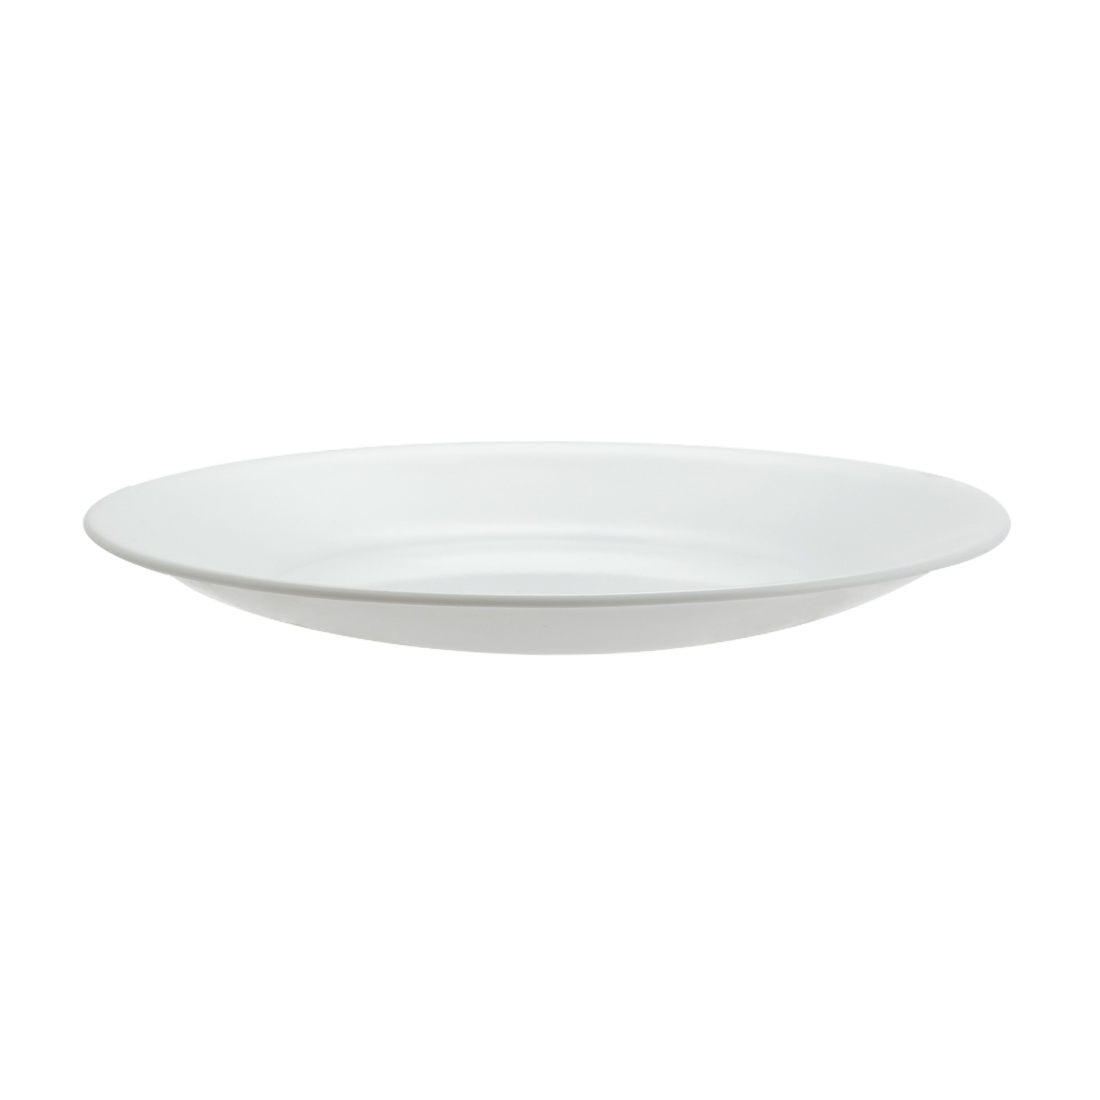 Corelle Winter Frost White Small Plate Vitrelle Plates in White Colour by Corelle